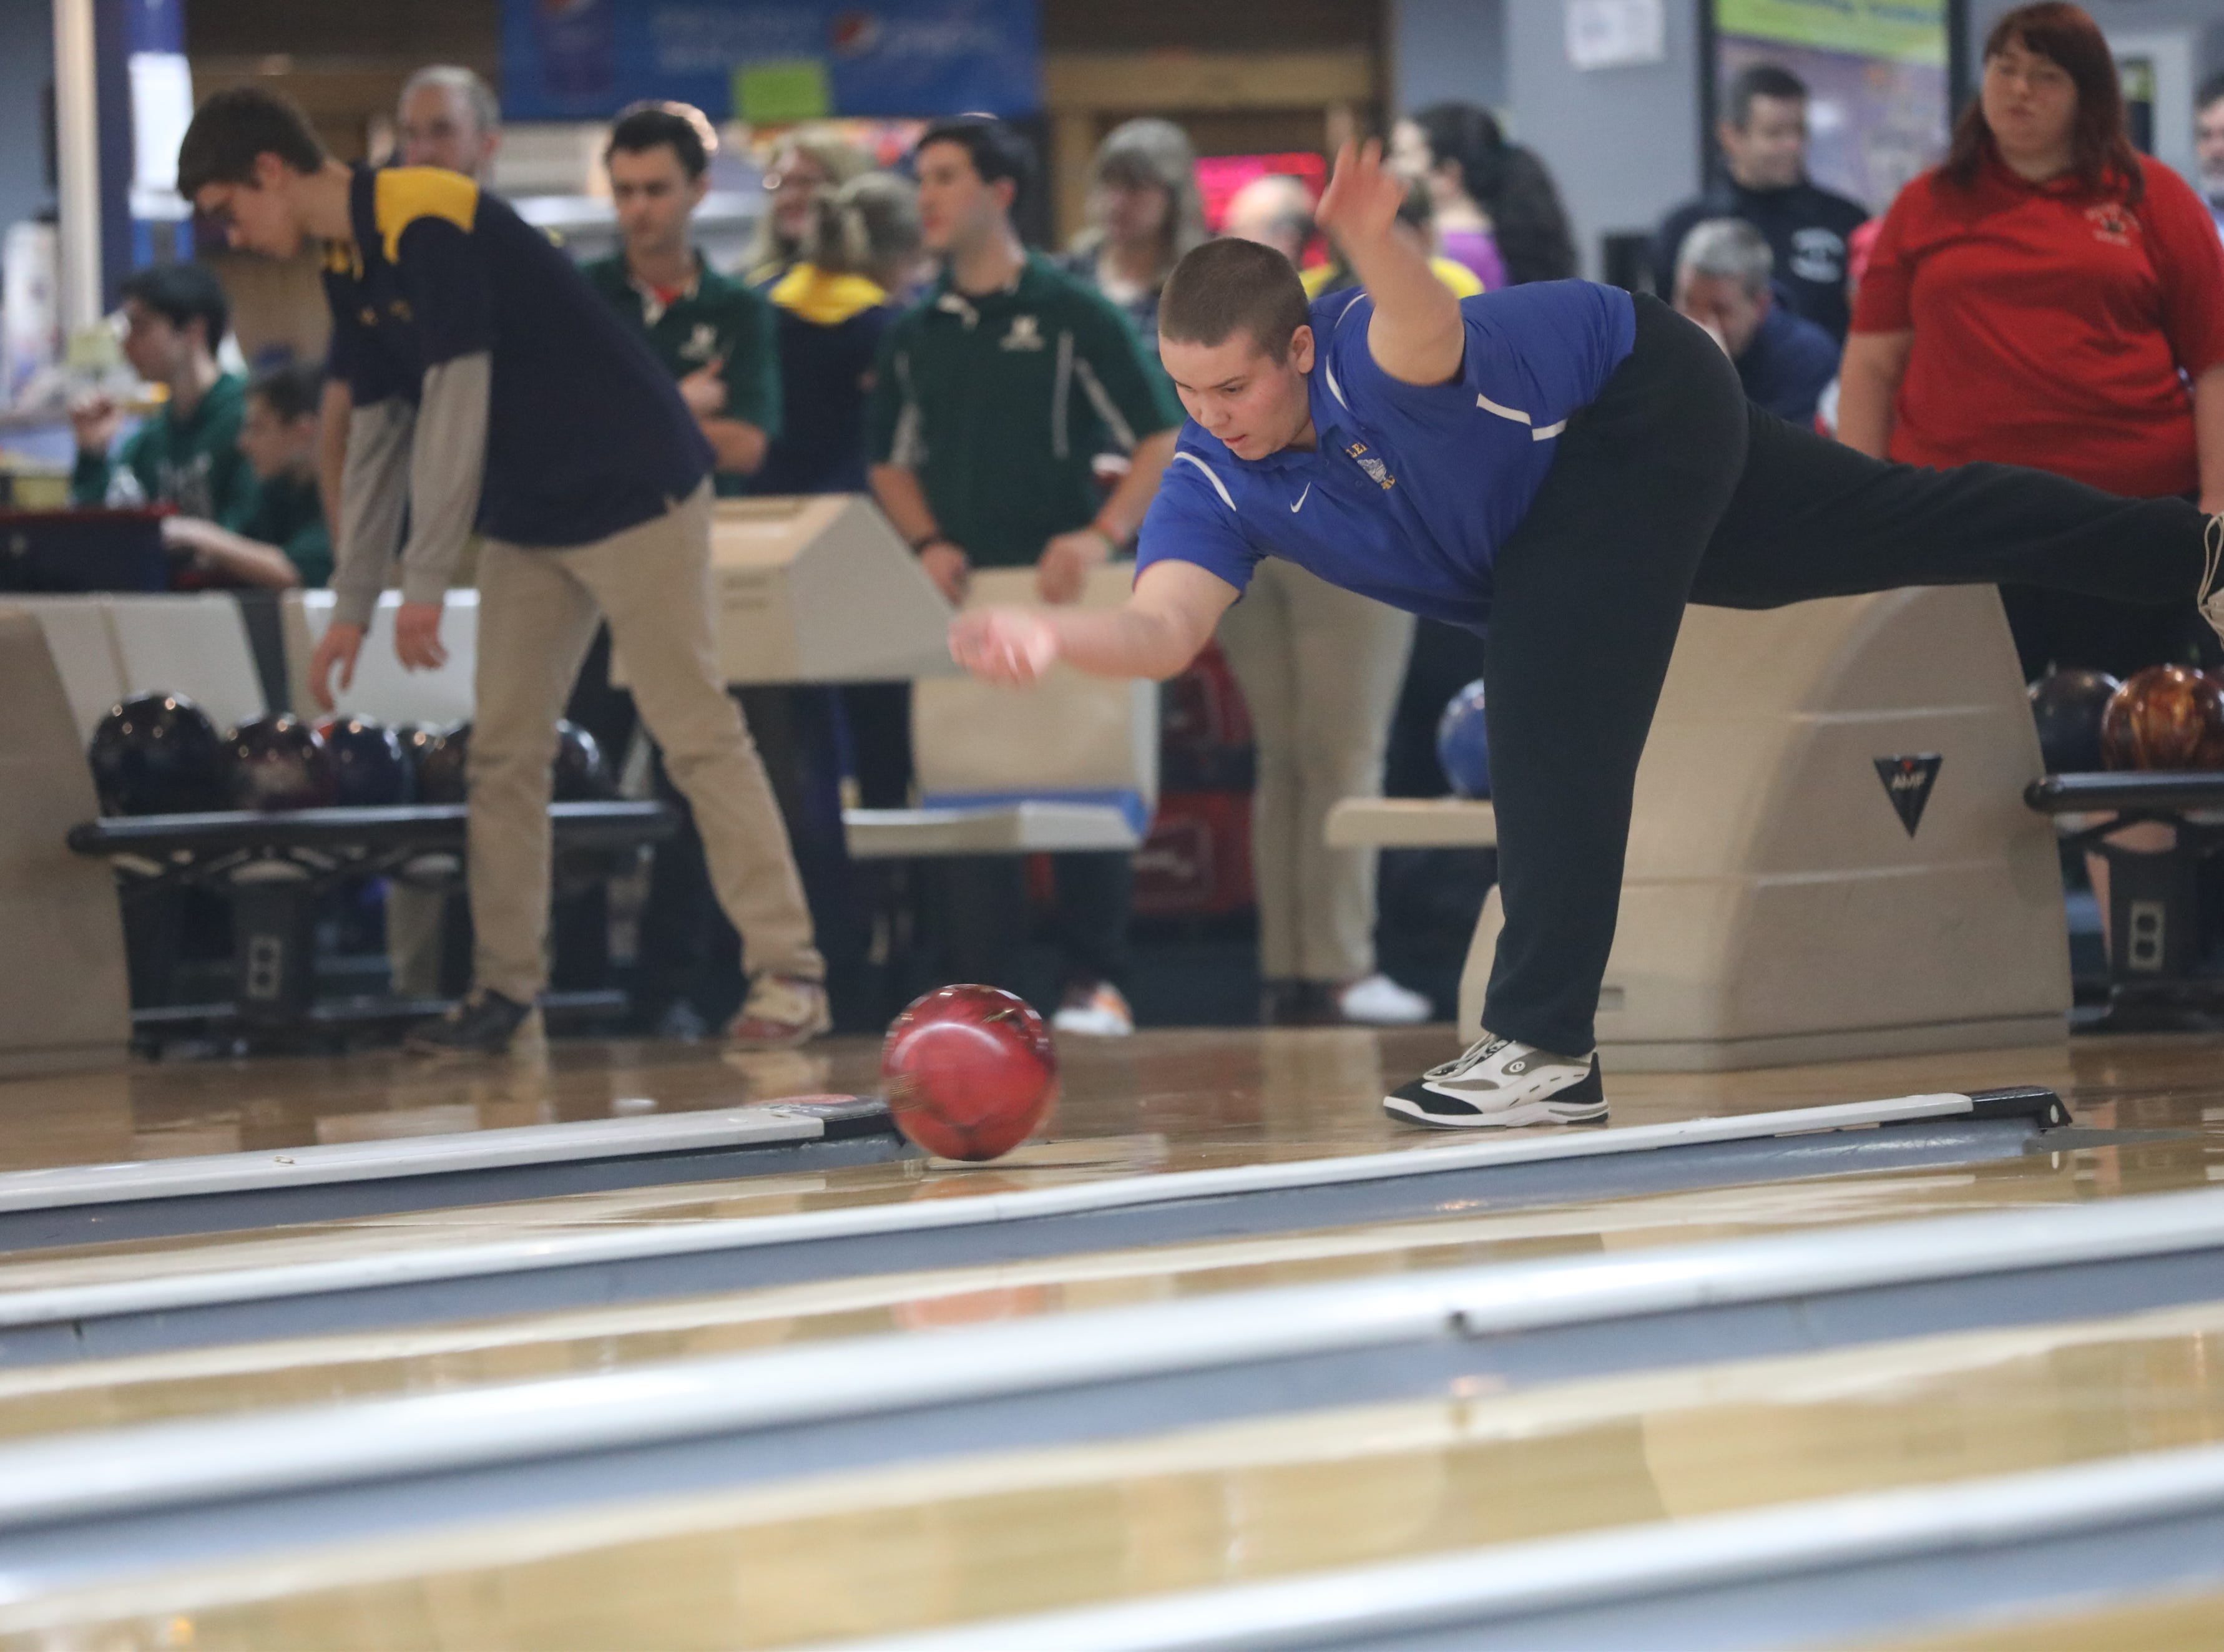 Brandin Hinchman, of Butler, competes at the Morris County Bowling Tournament, in Rockaway. Thursday, January 24, 2019